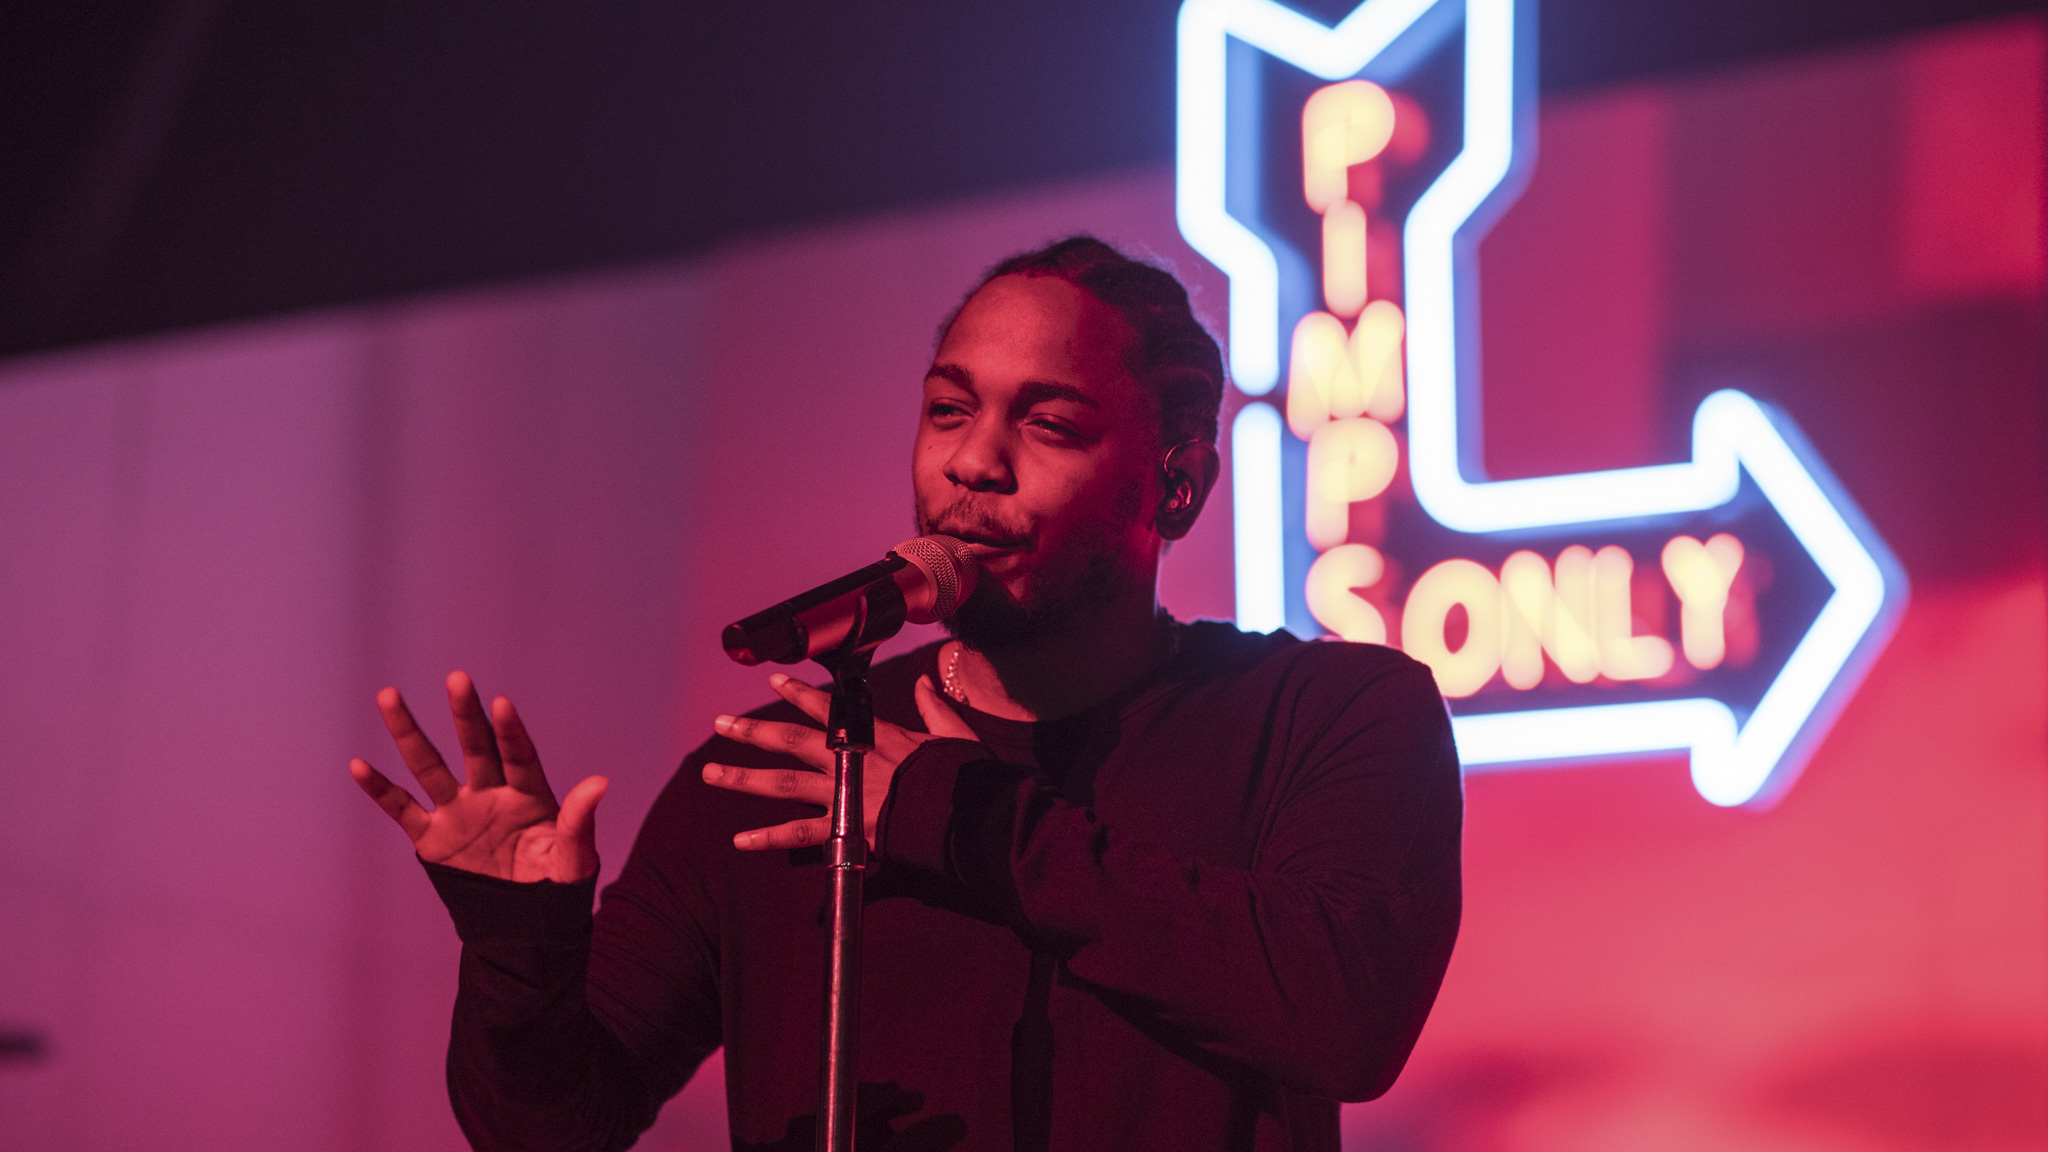 Kendrick Lamar brought his Kunta's Groove Sessions tour to the Riviera Theatre on November 6, 2015.